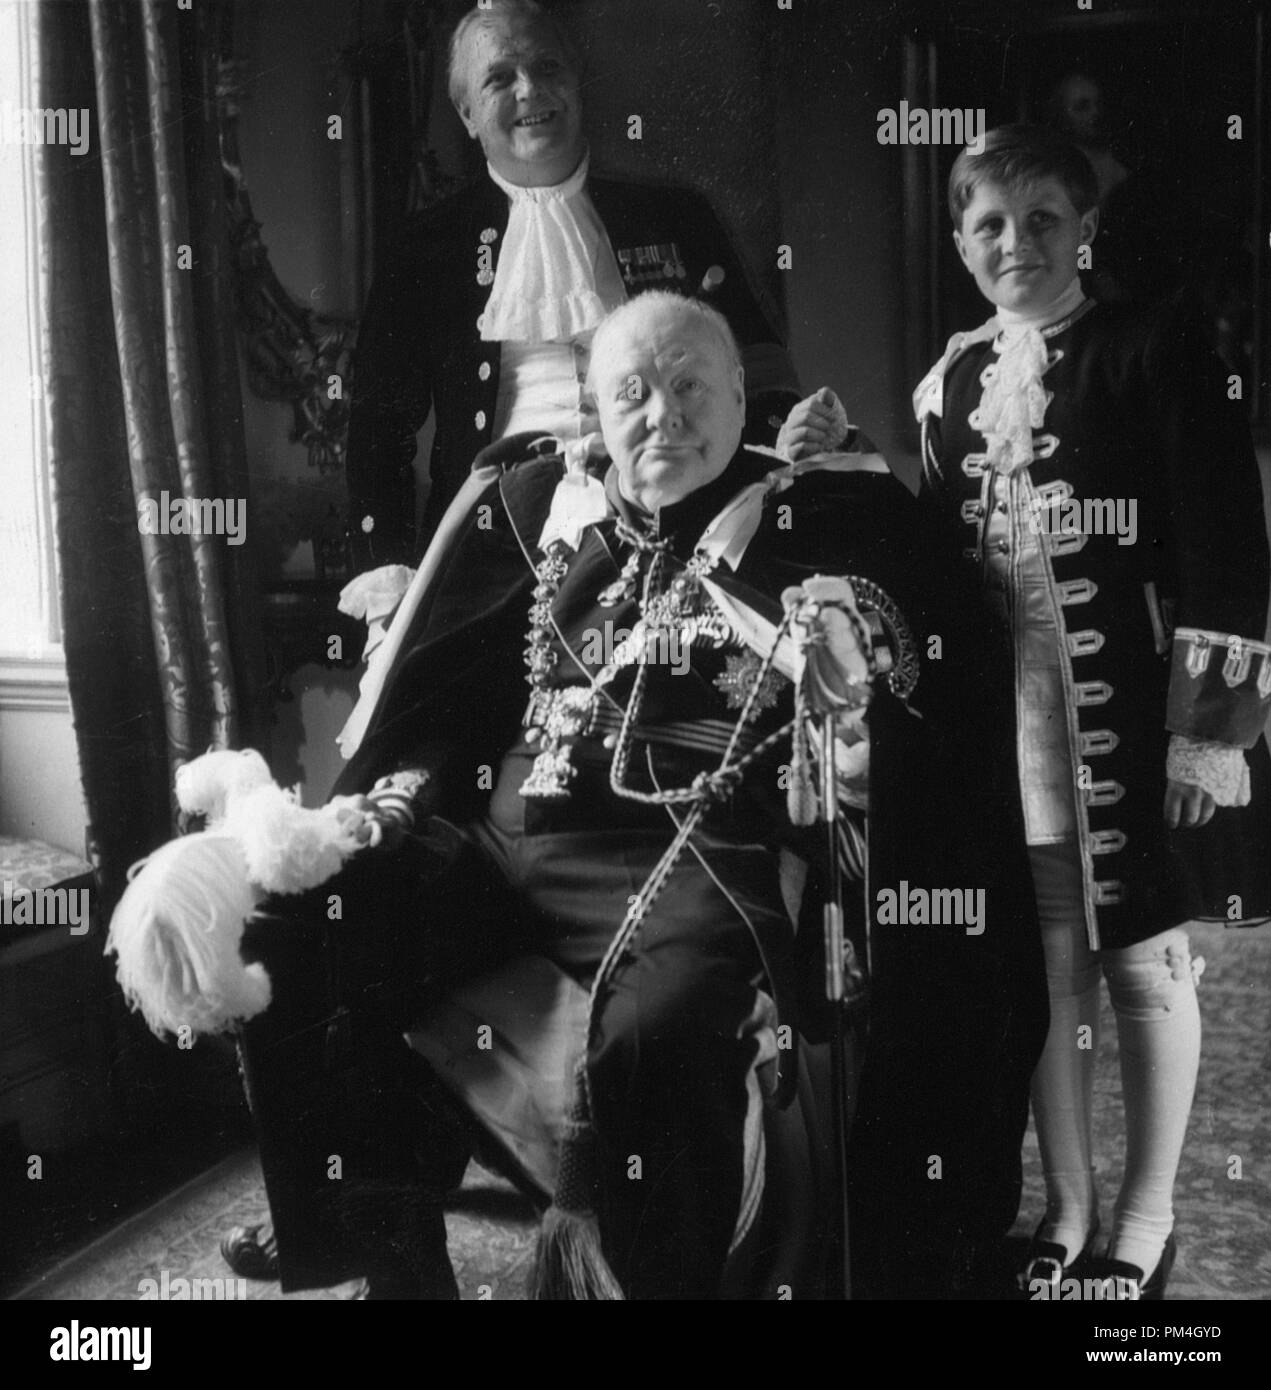 Sir Winston Churchill, his son Randolf [i.e., Randolph], and grandson, Winston in coronation robes, circa 1950s. photo by Toni Frissell  File Reference # 1003_148THA - Stock Image